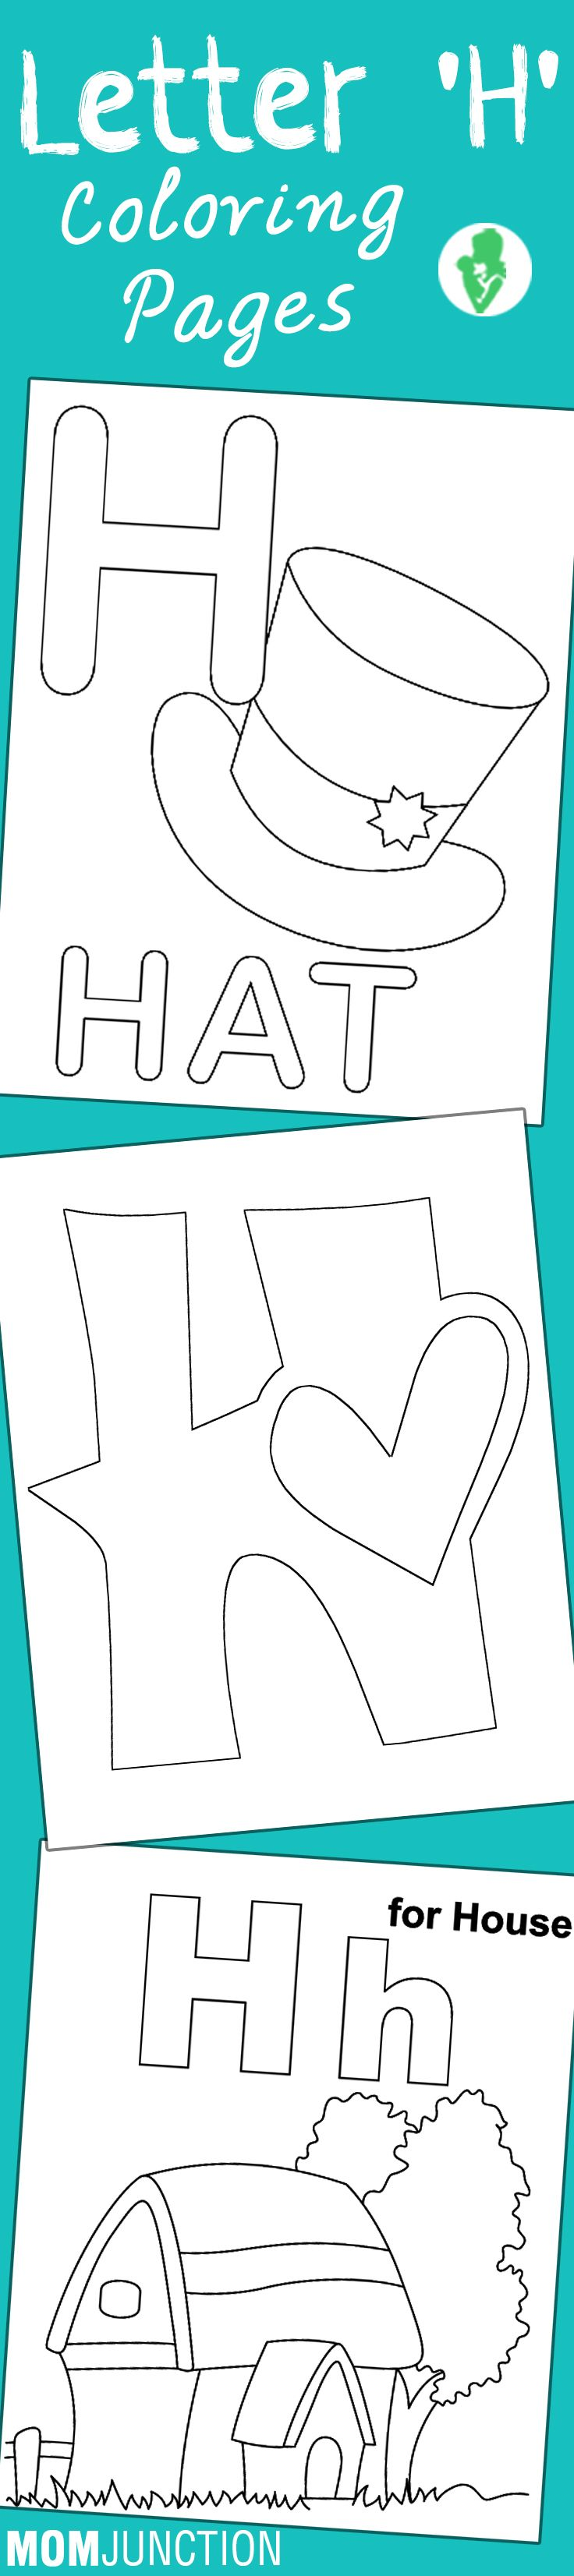 Top 10 Letter 'H' Coloring Pages Your Toddler Will Love To Learn & Color